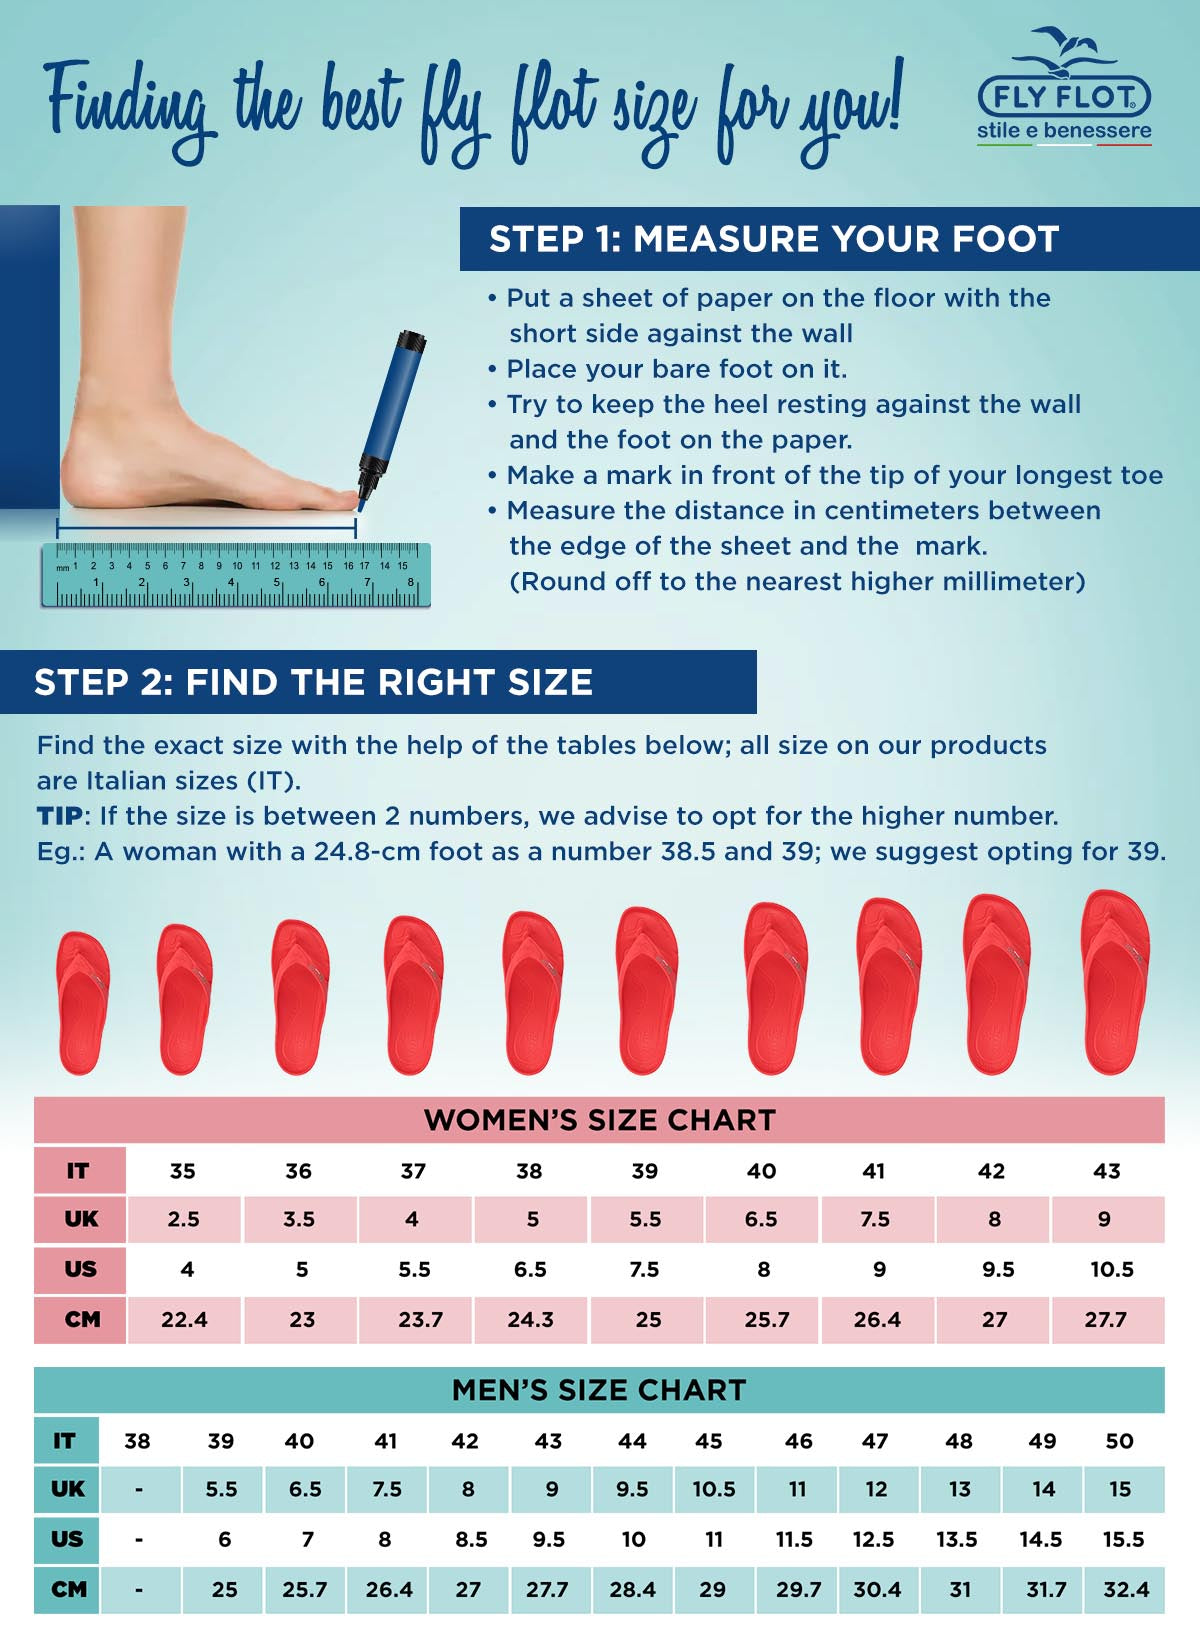 Easy steps to find the right shoe size at Fly Flot